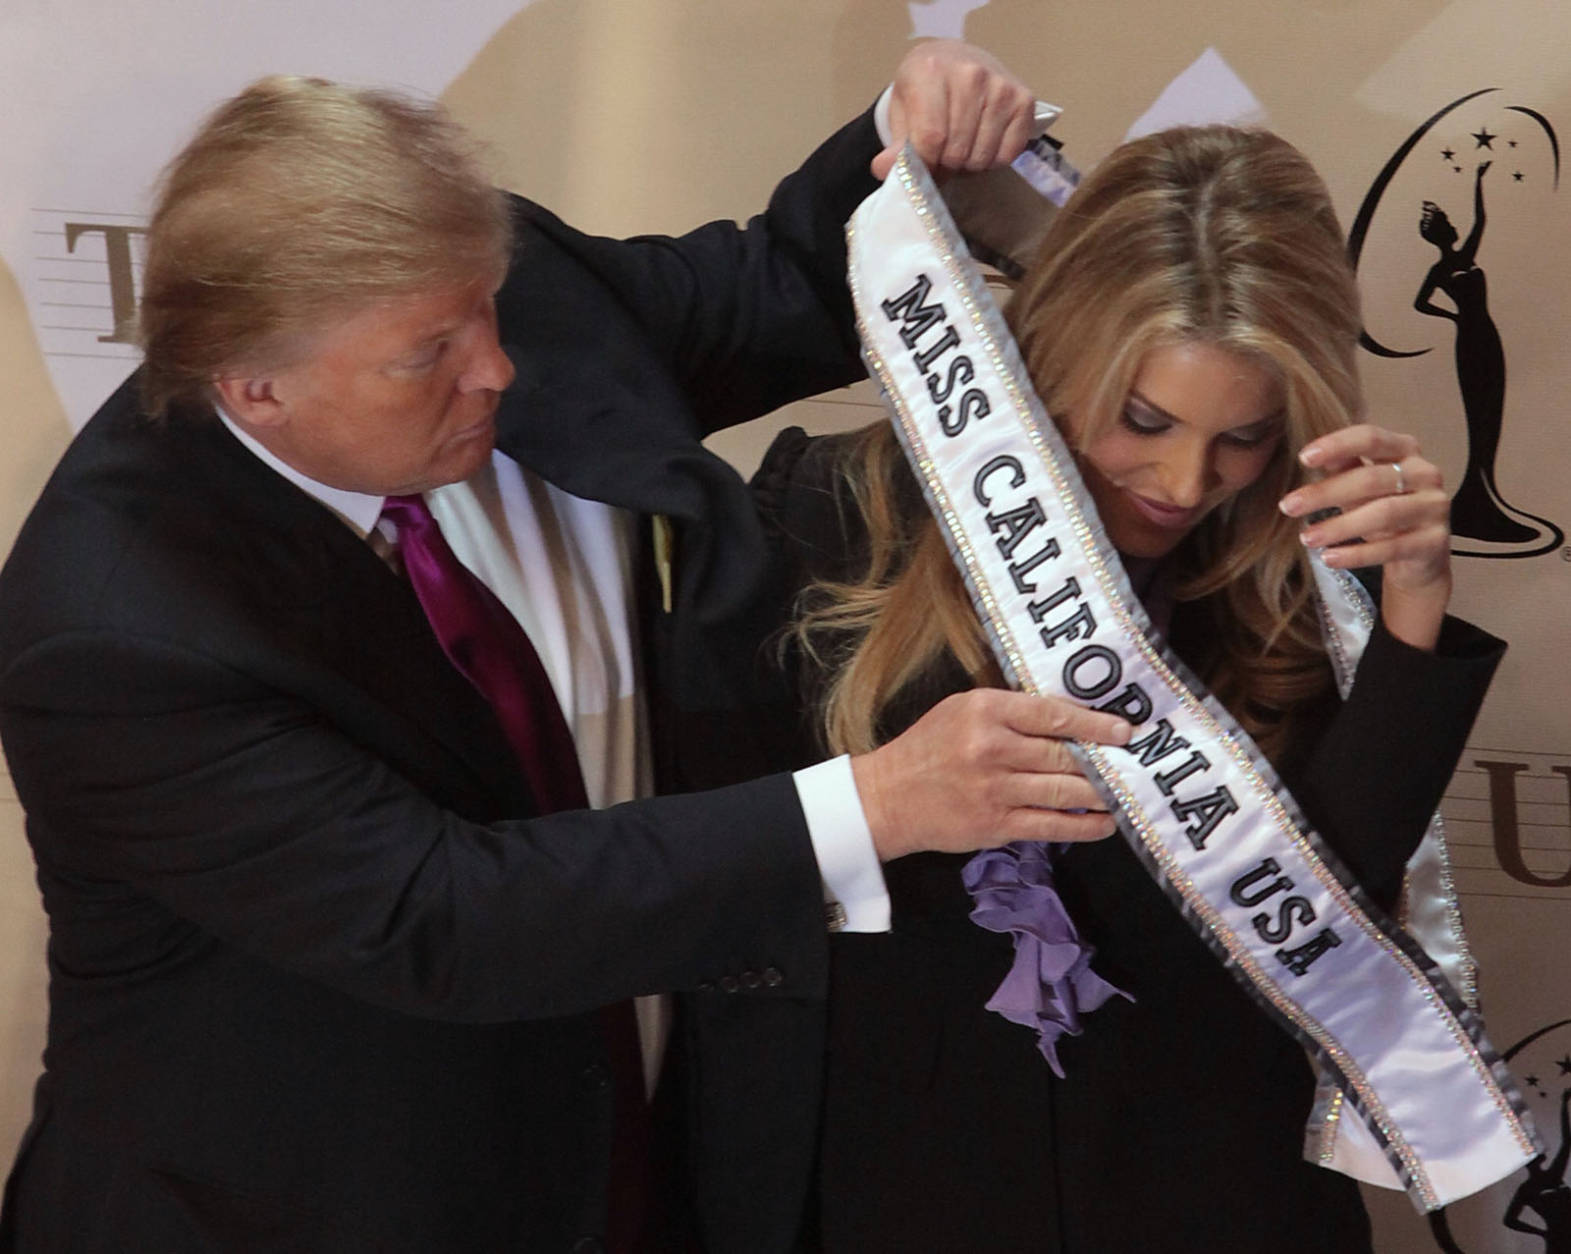 Donald Trump place a sash on Miss California USA, Carrie Prejean following a news conference in New York, Tuesday May 12, 2009.  Trump, who owns the Miss USA pageant, says Prejean can retain her Miss California USA crown after she caused a stir expressing opposition to gay marriage and posing in risque photographs.  (AP Photo/Bebeto Matthews)